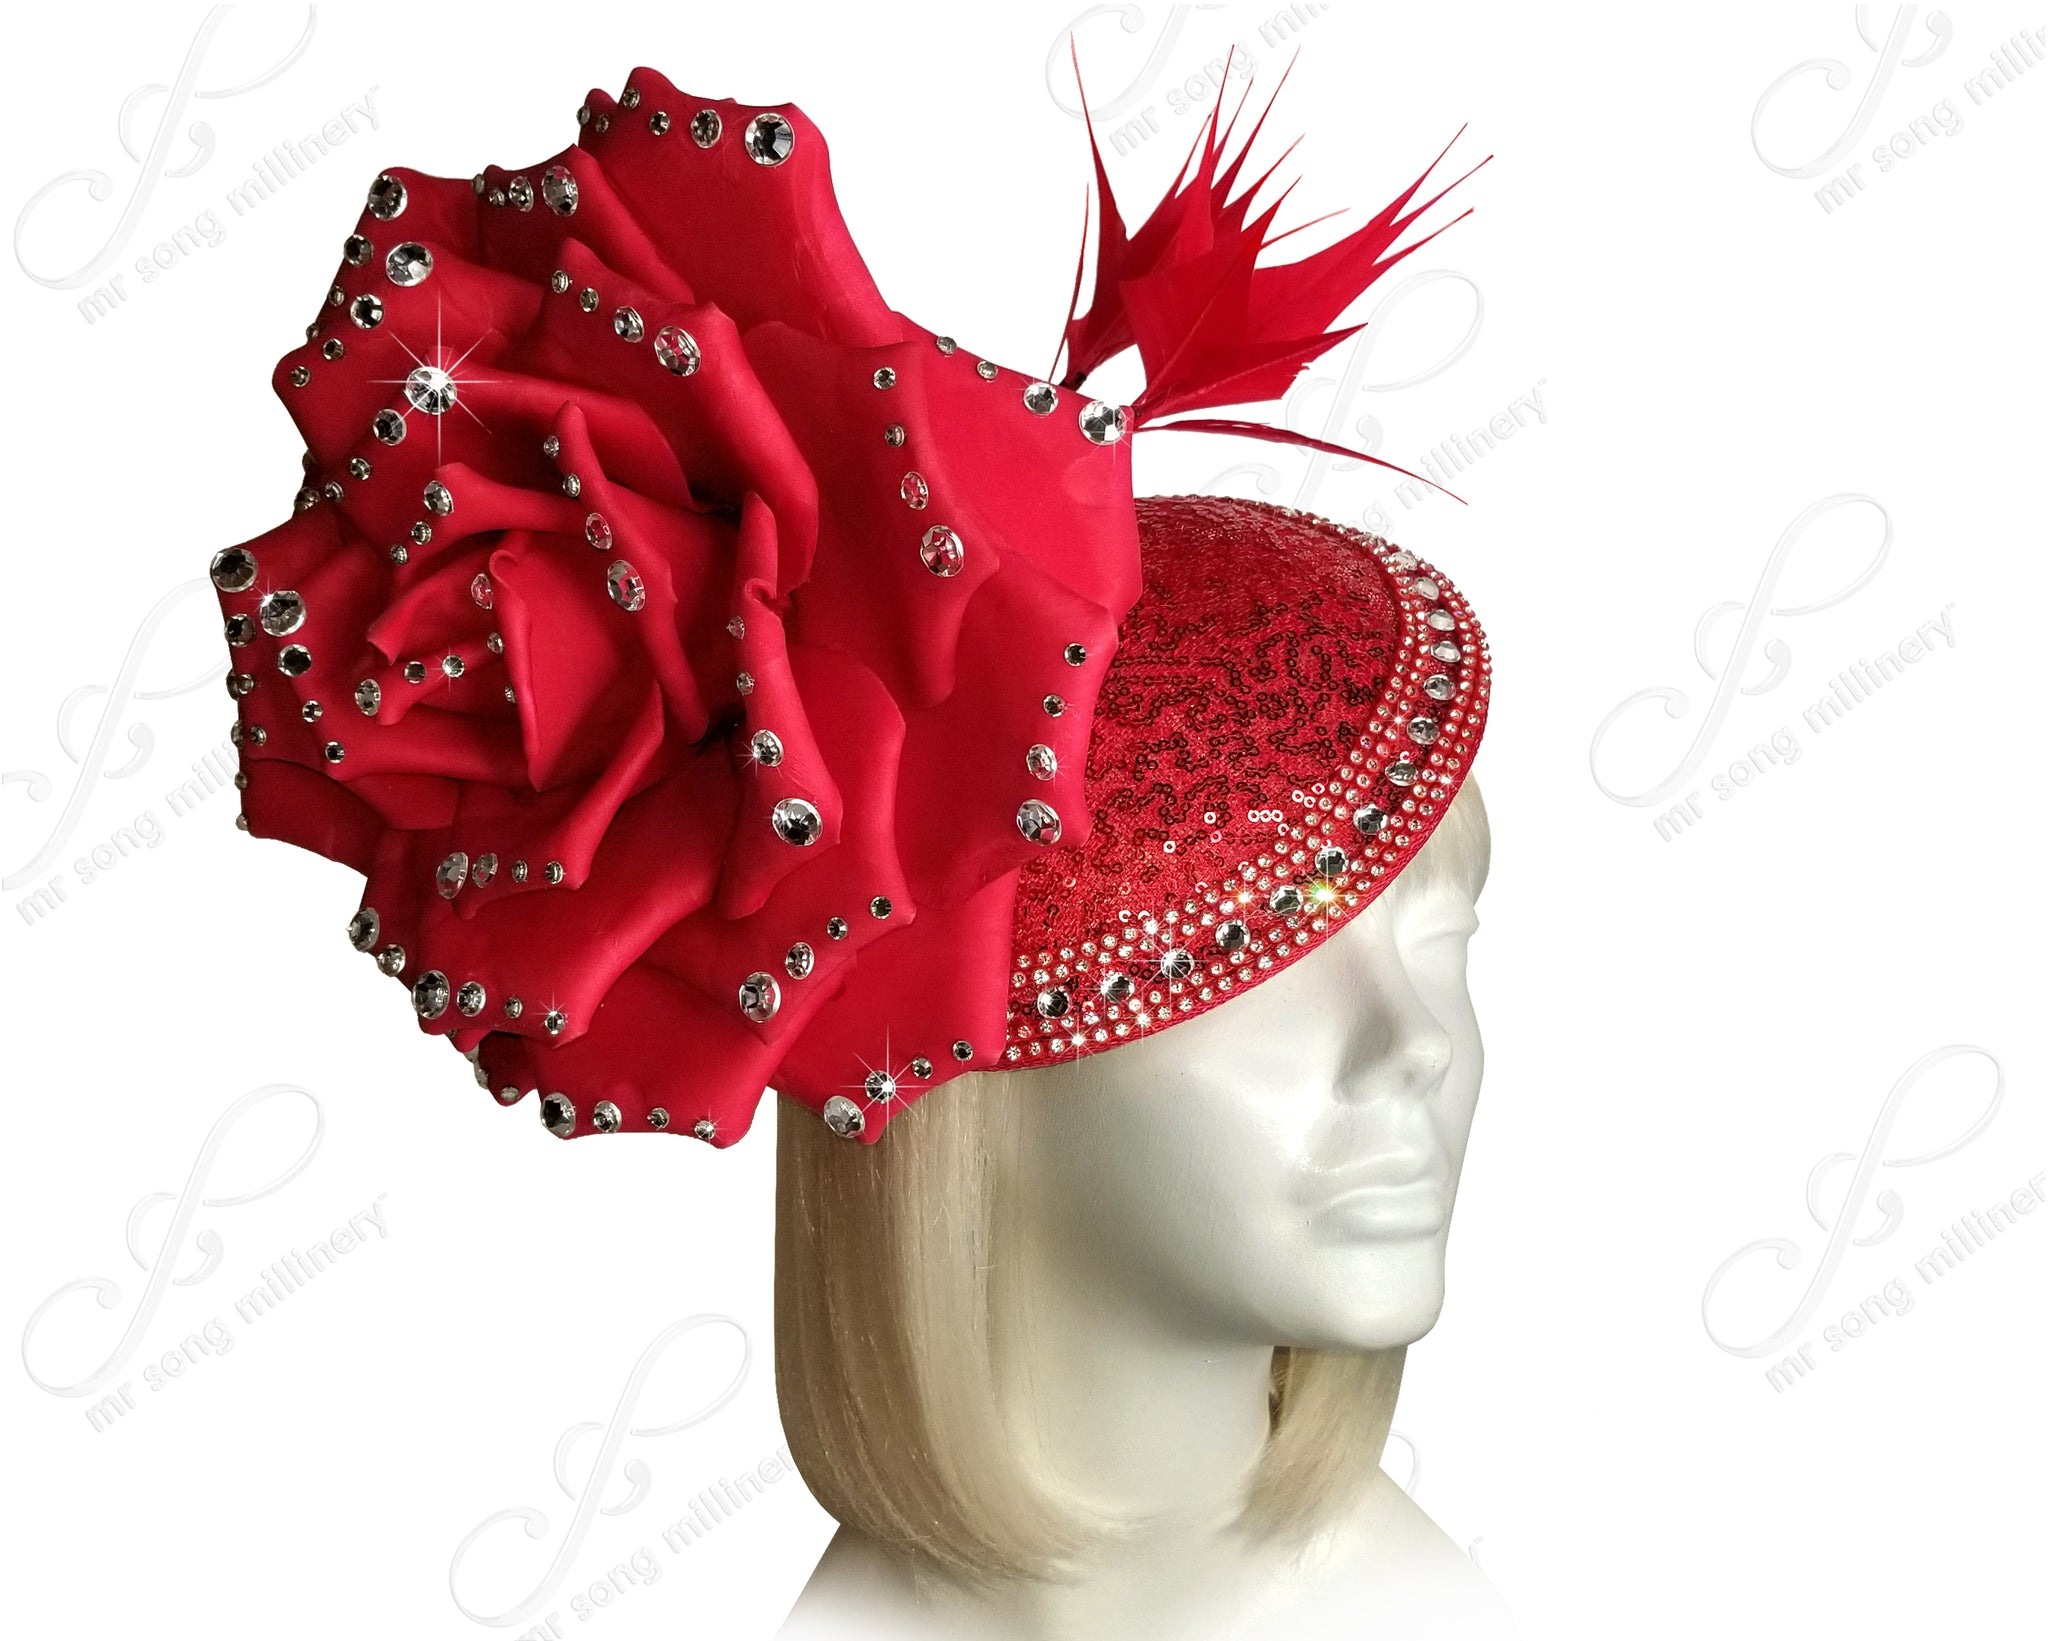 Peony Flora Profile Beanie Fascinator Headband - 2 Colors